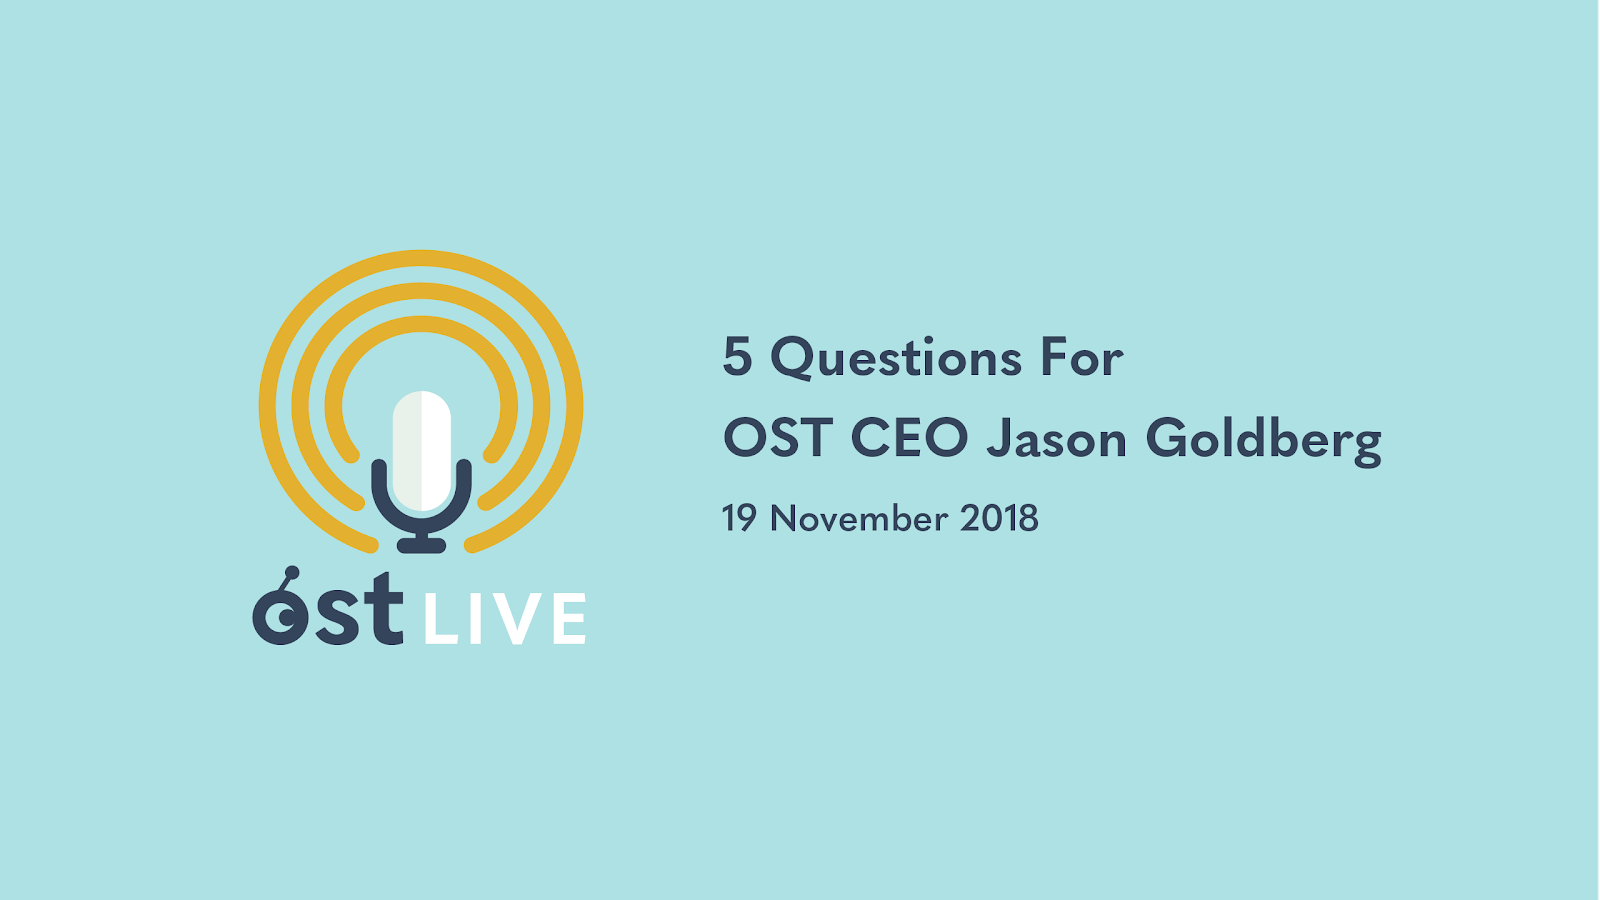 5 Questions For OST CEO Jason Goldberg